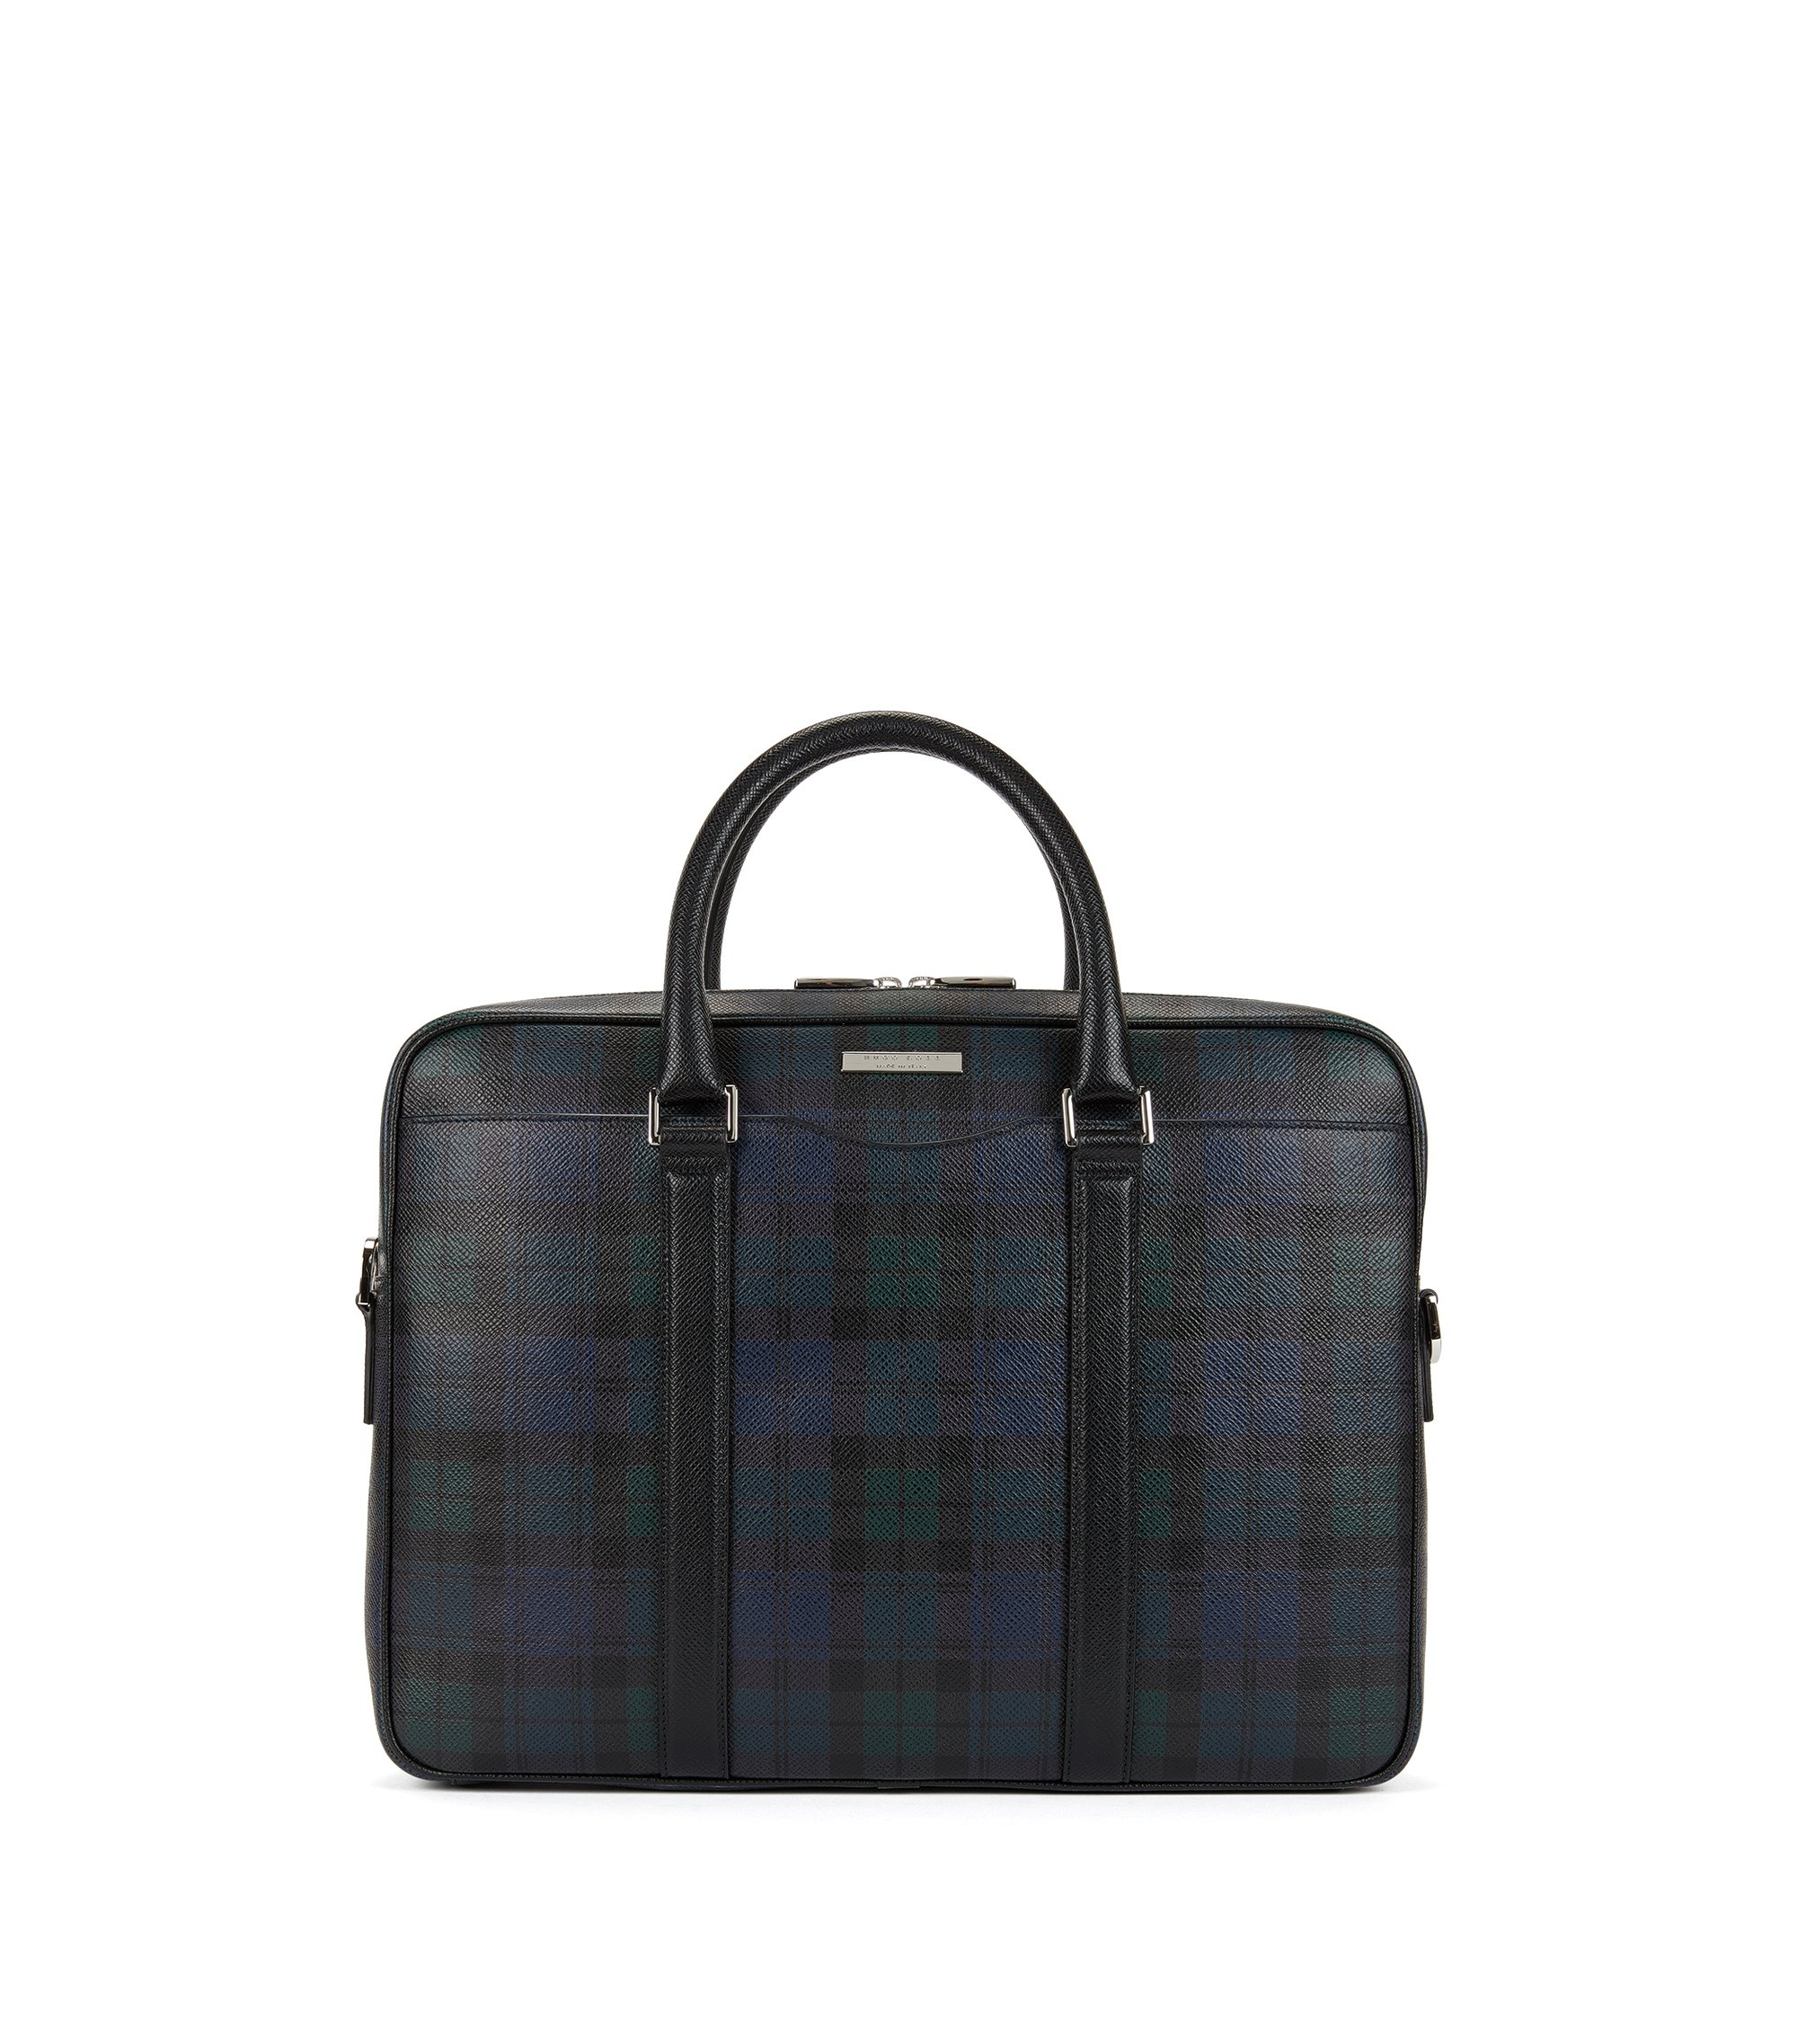 Signature Palmellato Leather Soft Briefcase | Signature BW S Doc, Patterned